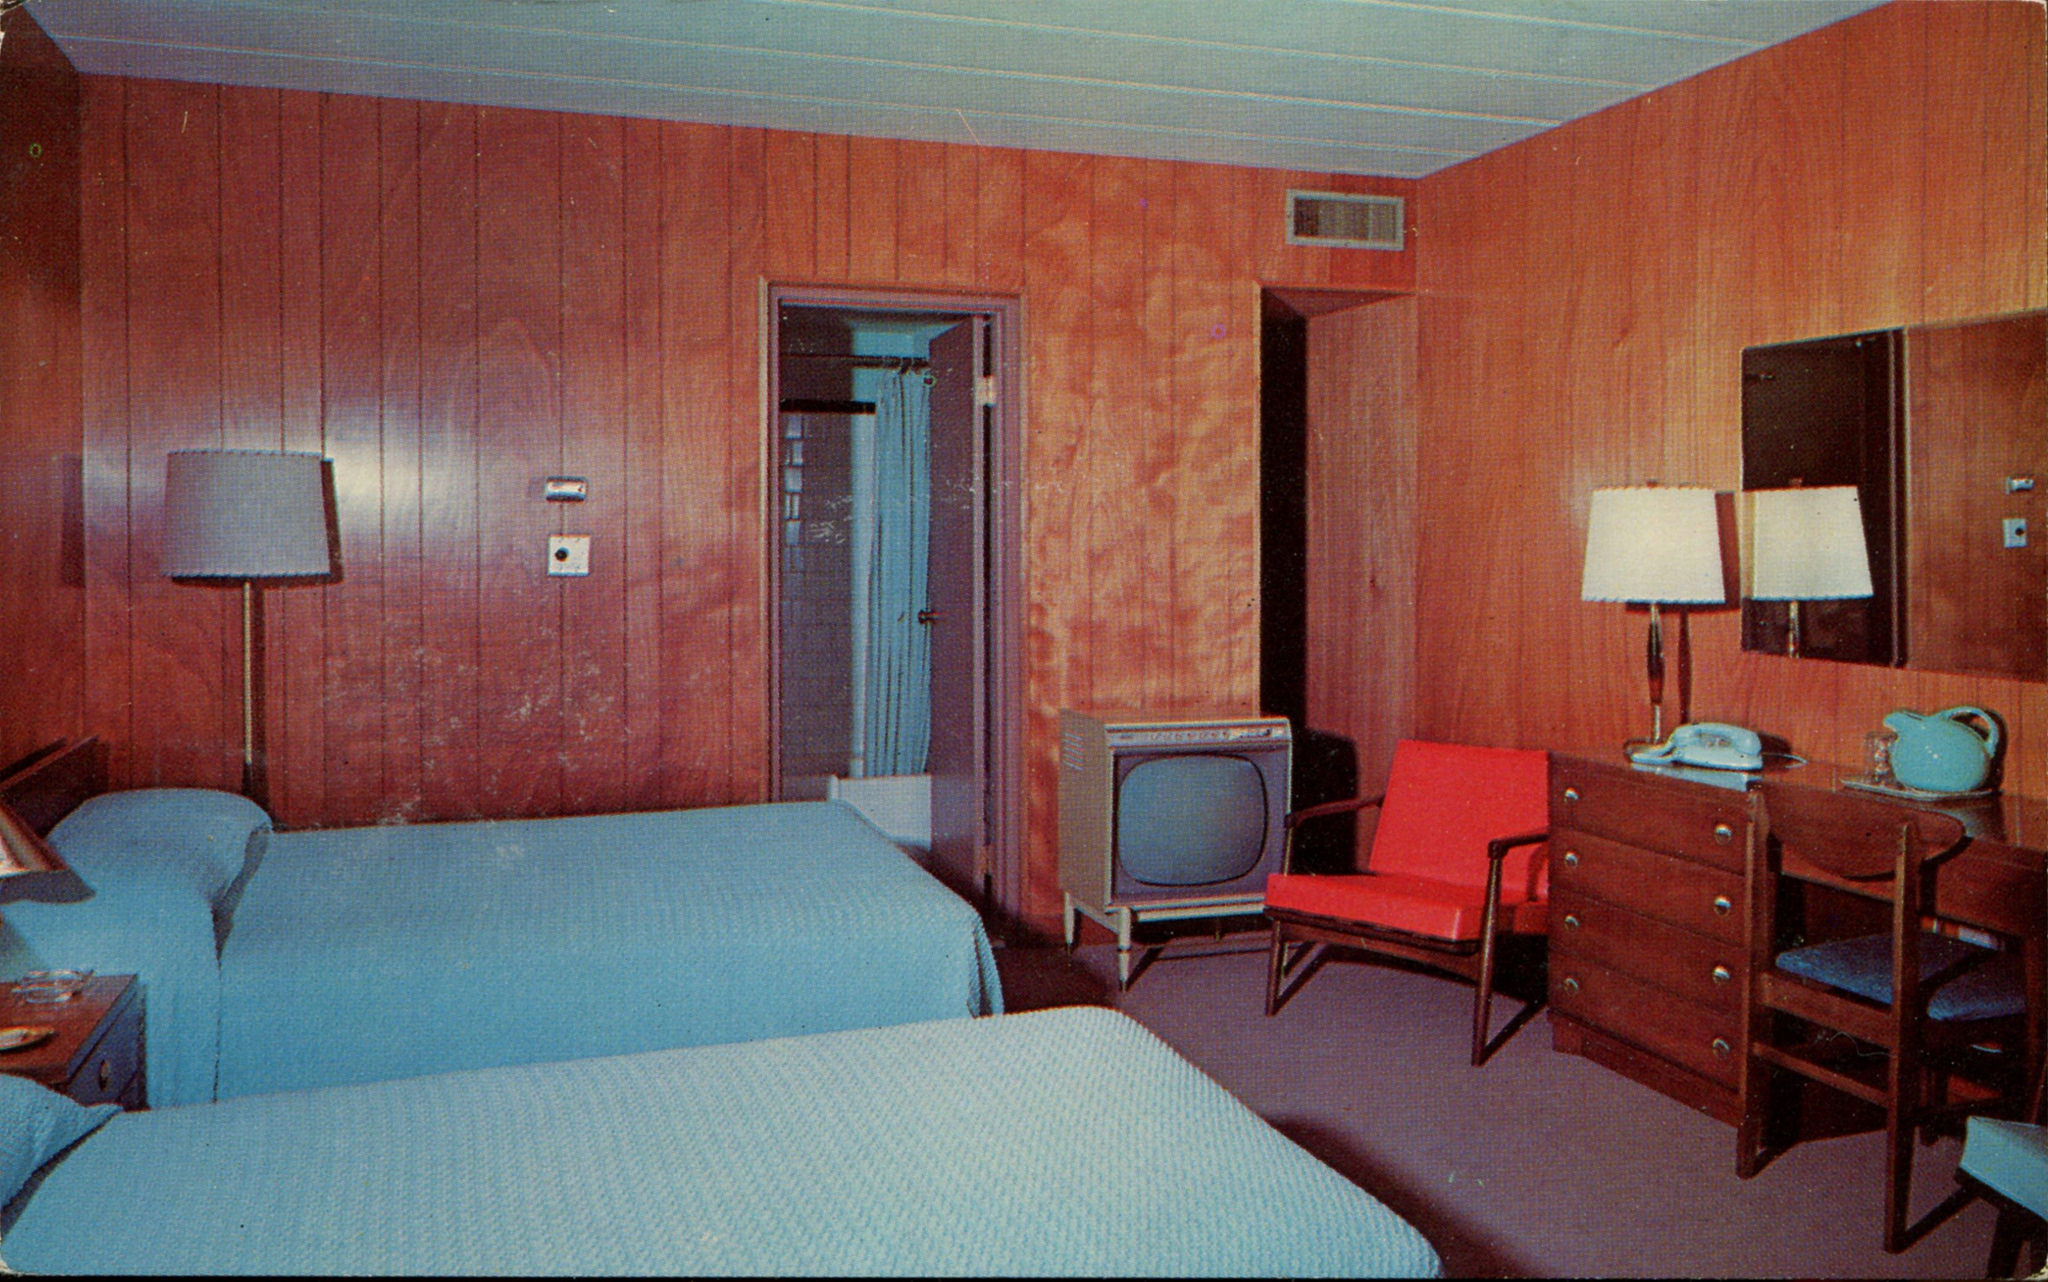 Postcards Of Mid Century Motel Rooms With Style Flashbak